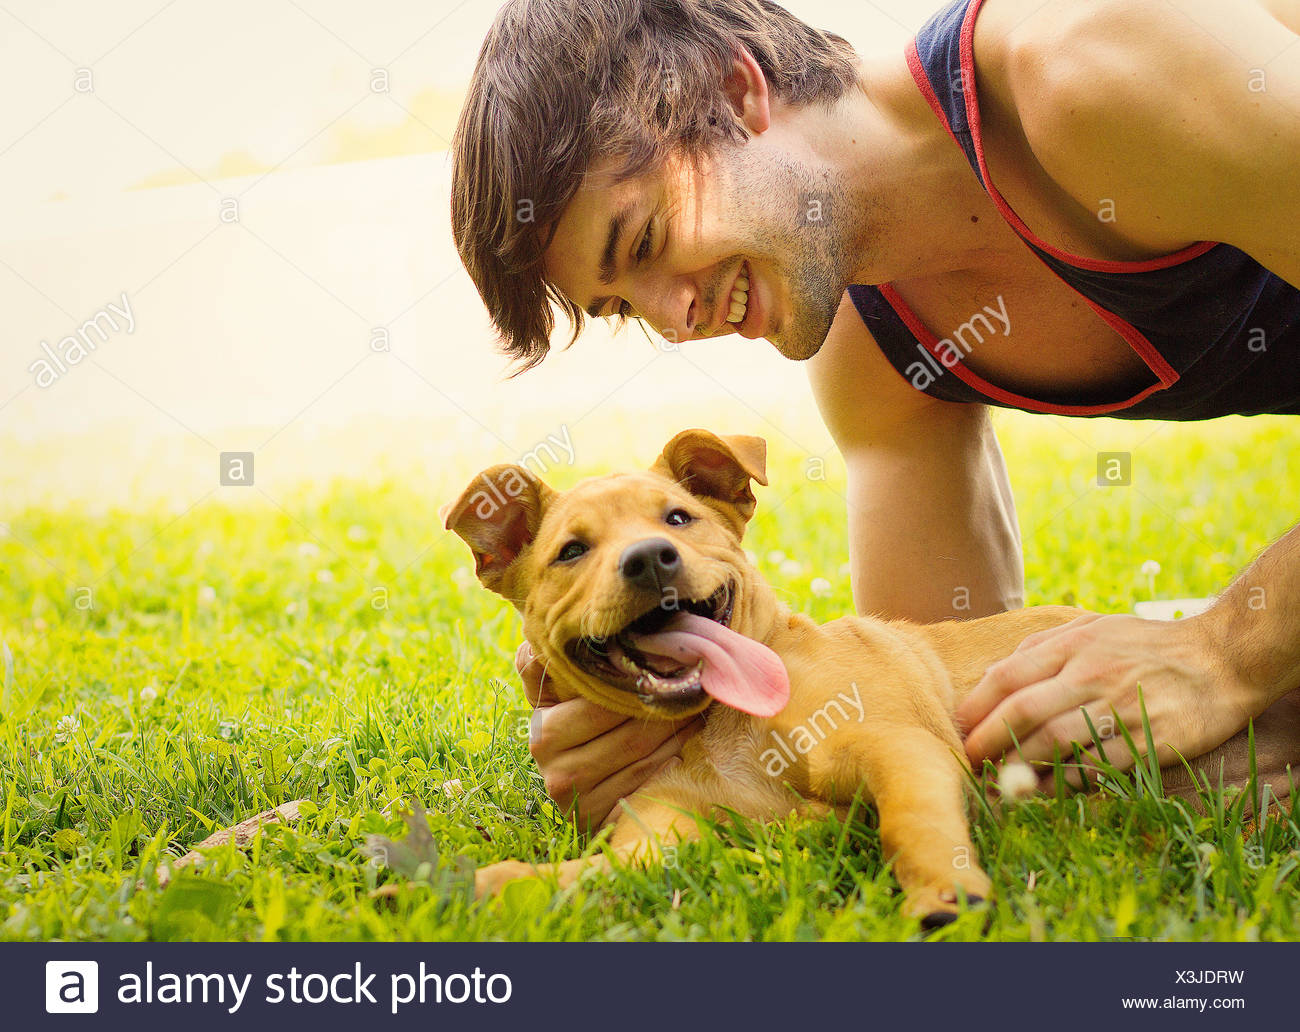 Smiling man lying on grass stroking his puppy dog - Stock Image